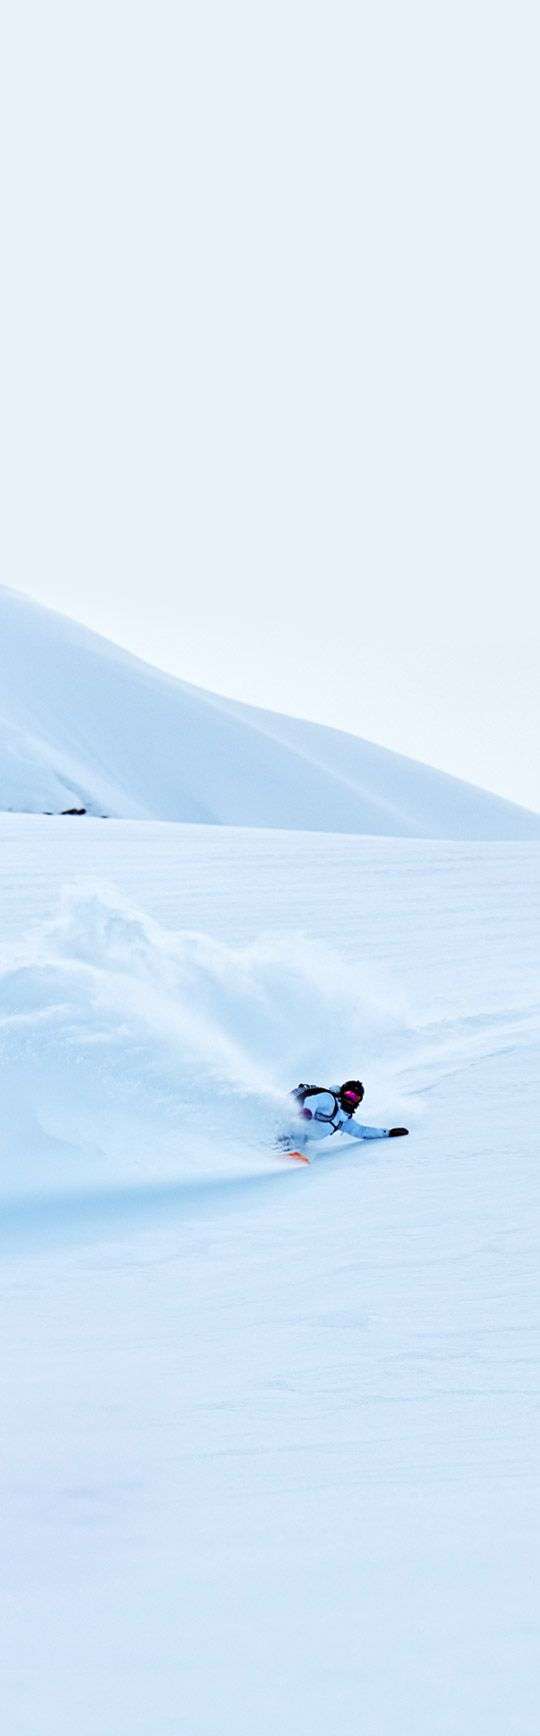 Torah Bright sets the Gold standard #ROXYsnow